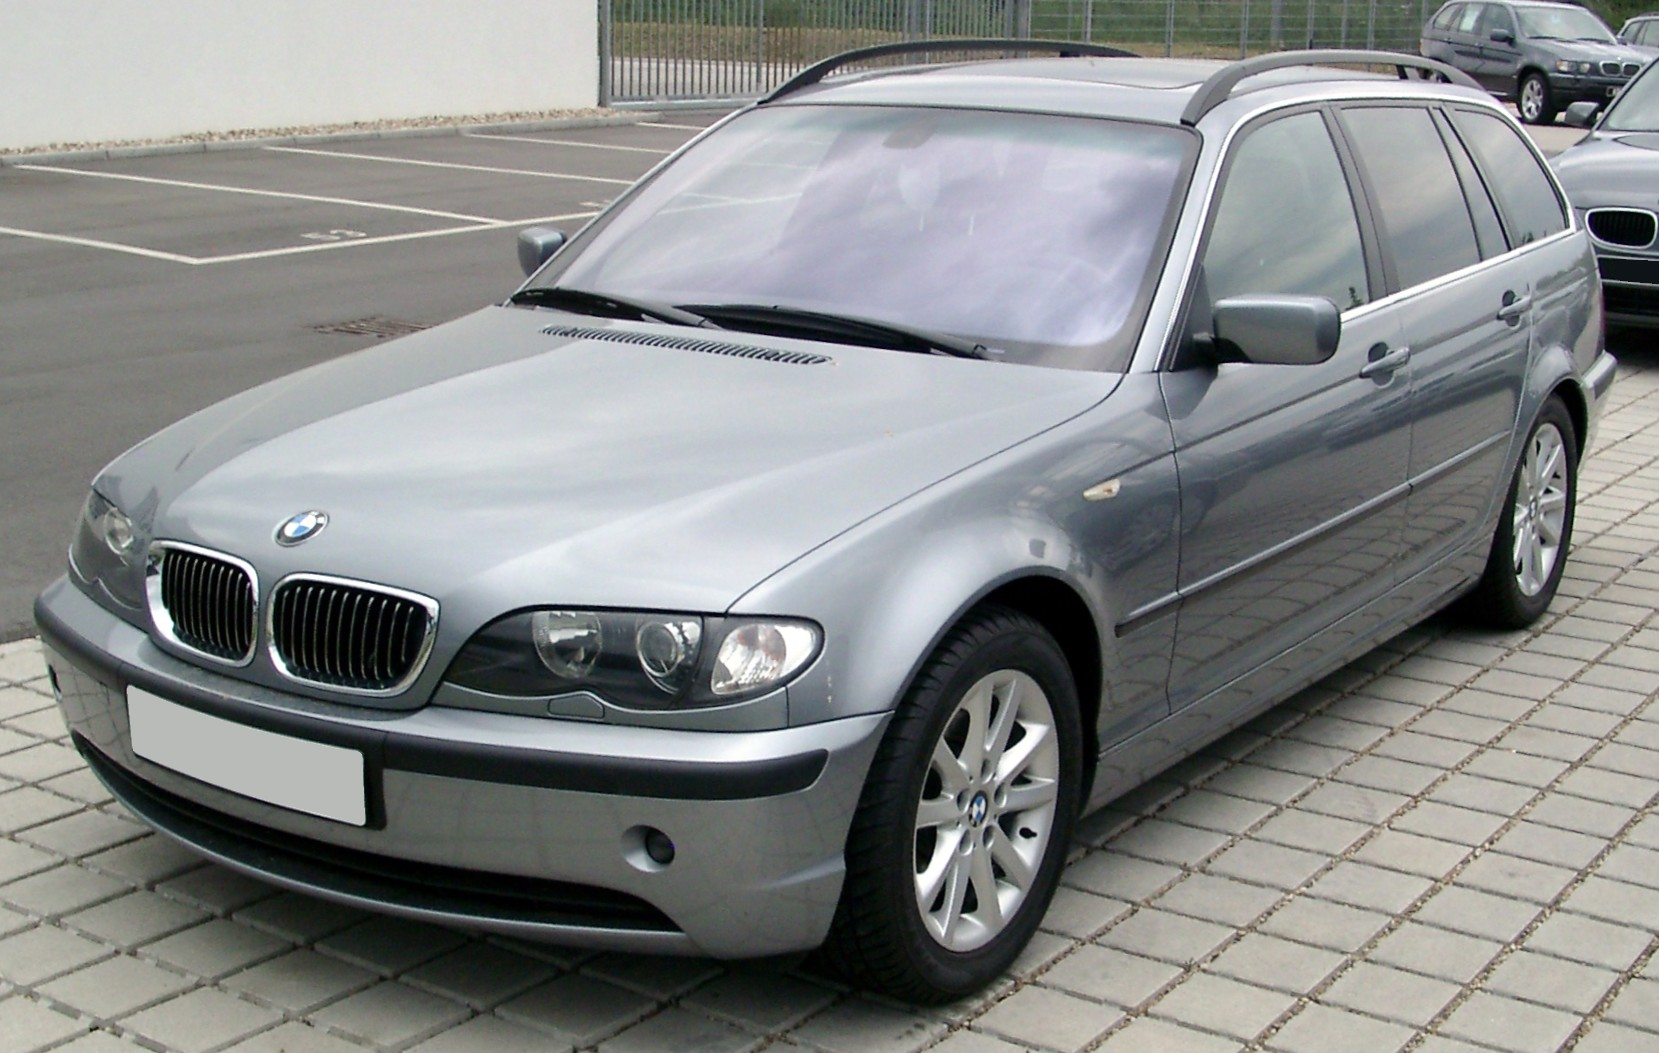 bmw 320i 2 0 touring e46 pictures photos information of modification video to bmw 320i 2. Black Bedroom Furniture Sets. Home Design Ideas